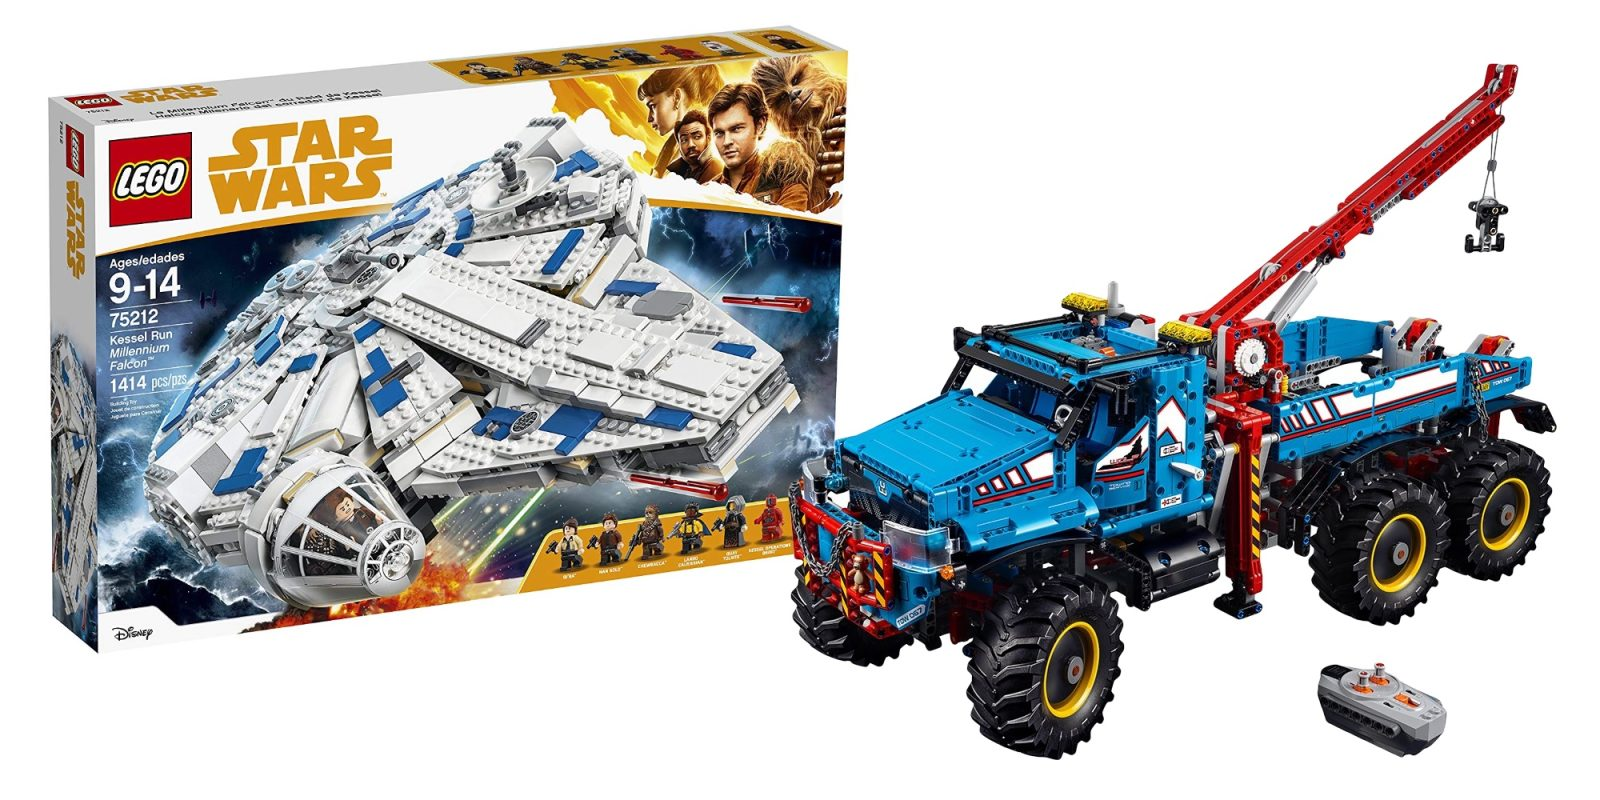 Save $85 on LEGO's Technic Tow Truck for $205 + Millennium Falcon $115, more